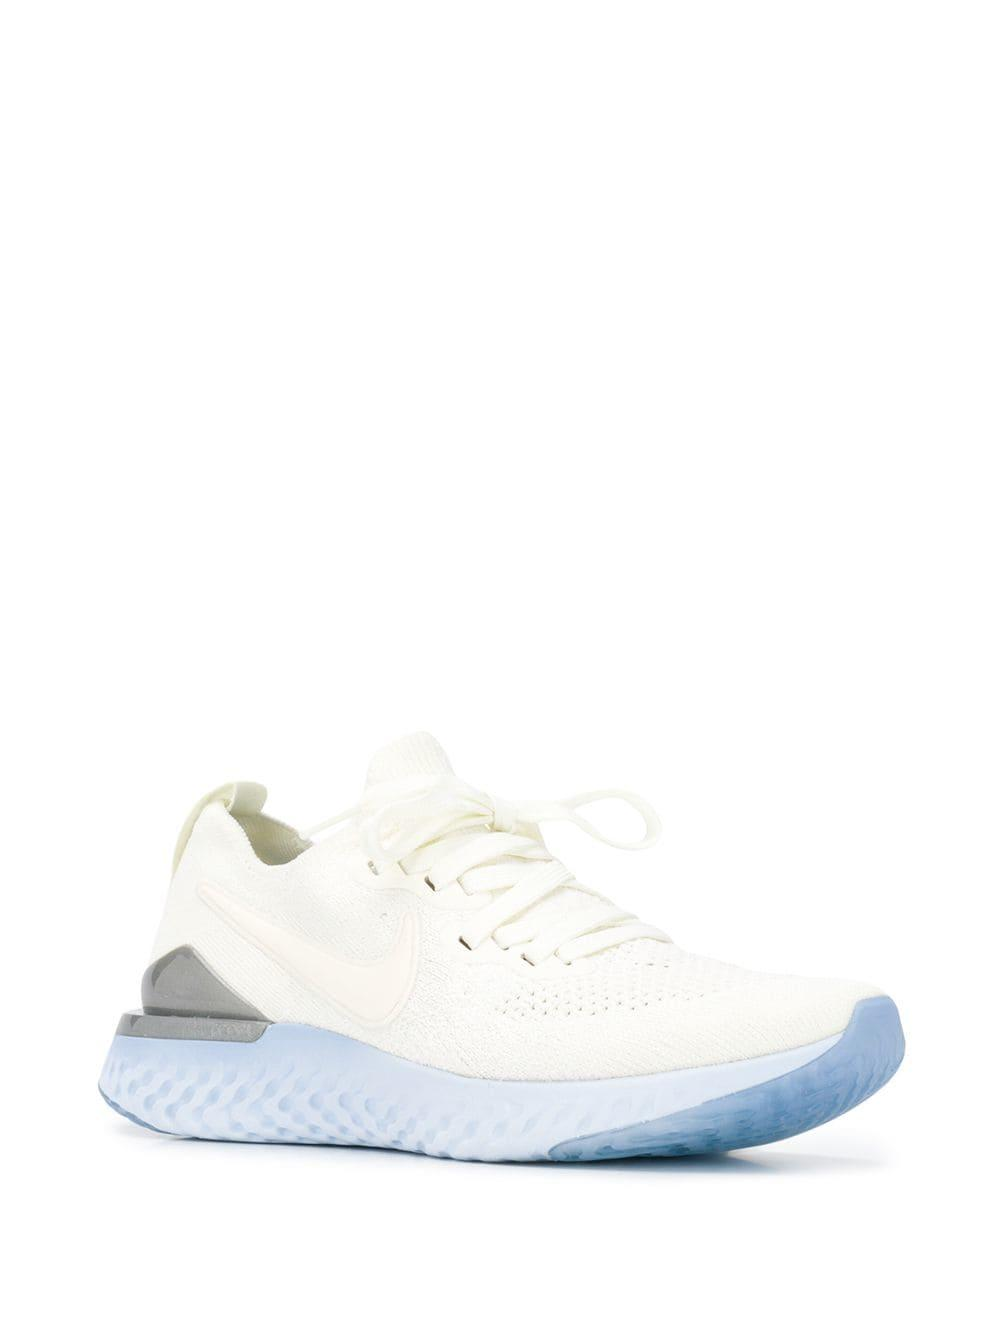 63fe1ba8ecd4 Nike - White Epic React Flyknit Sneakers - Lyst. View fullscreen